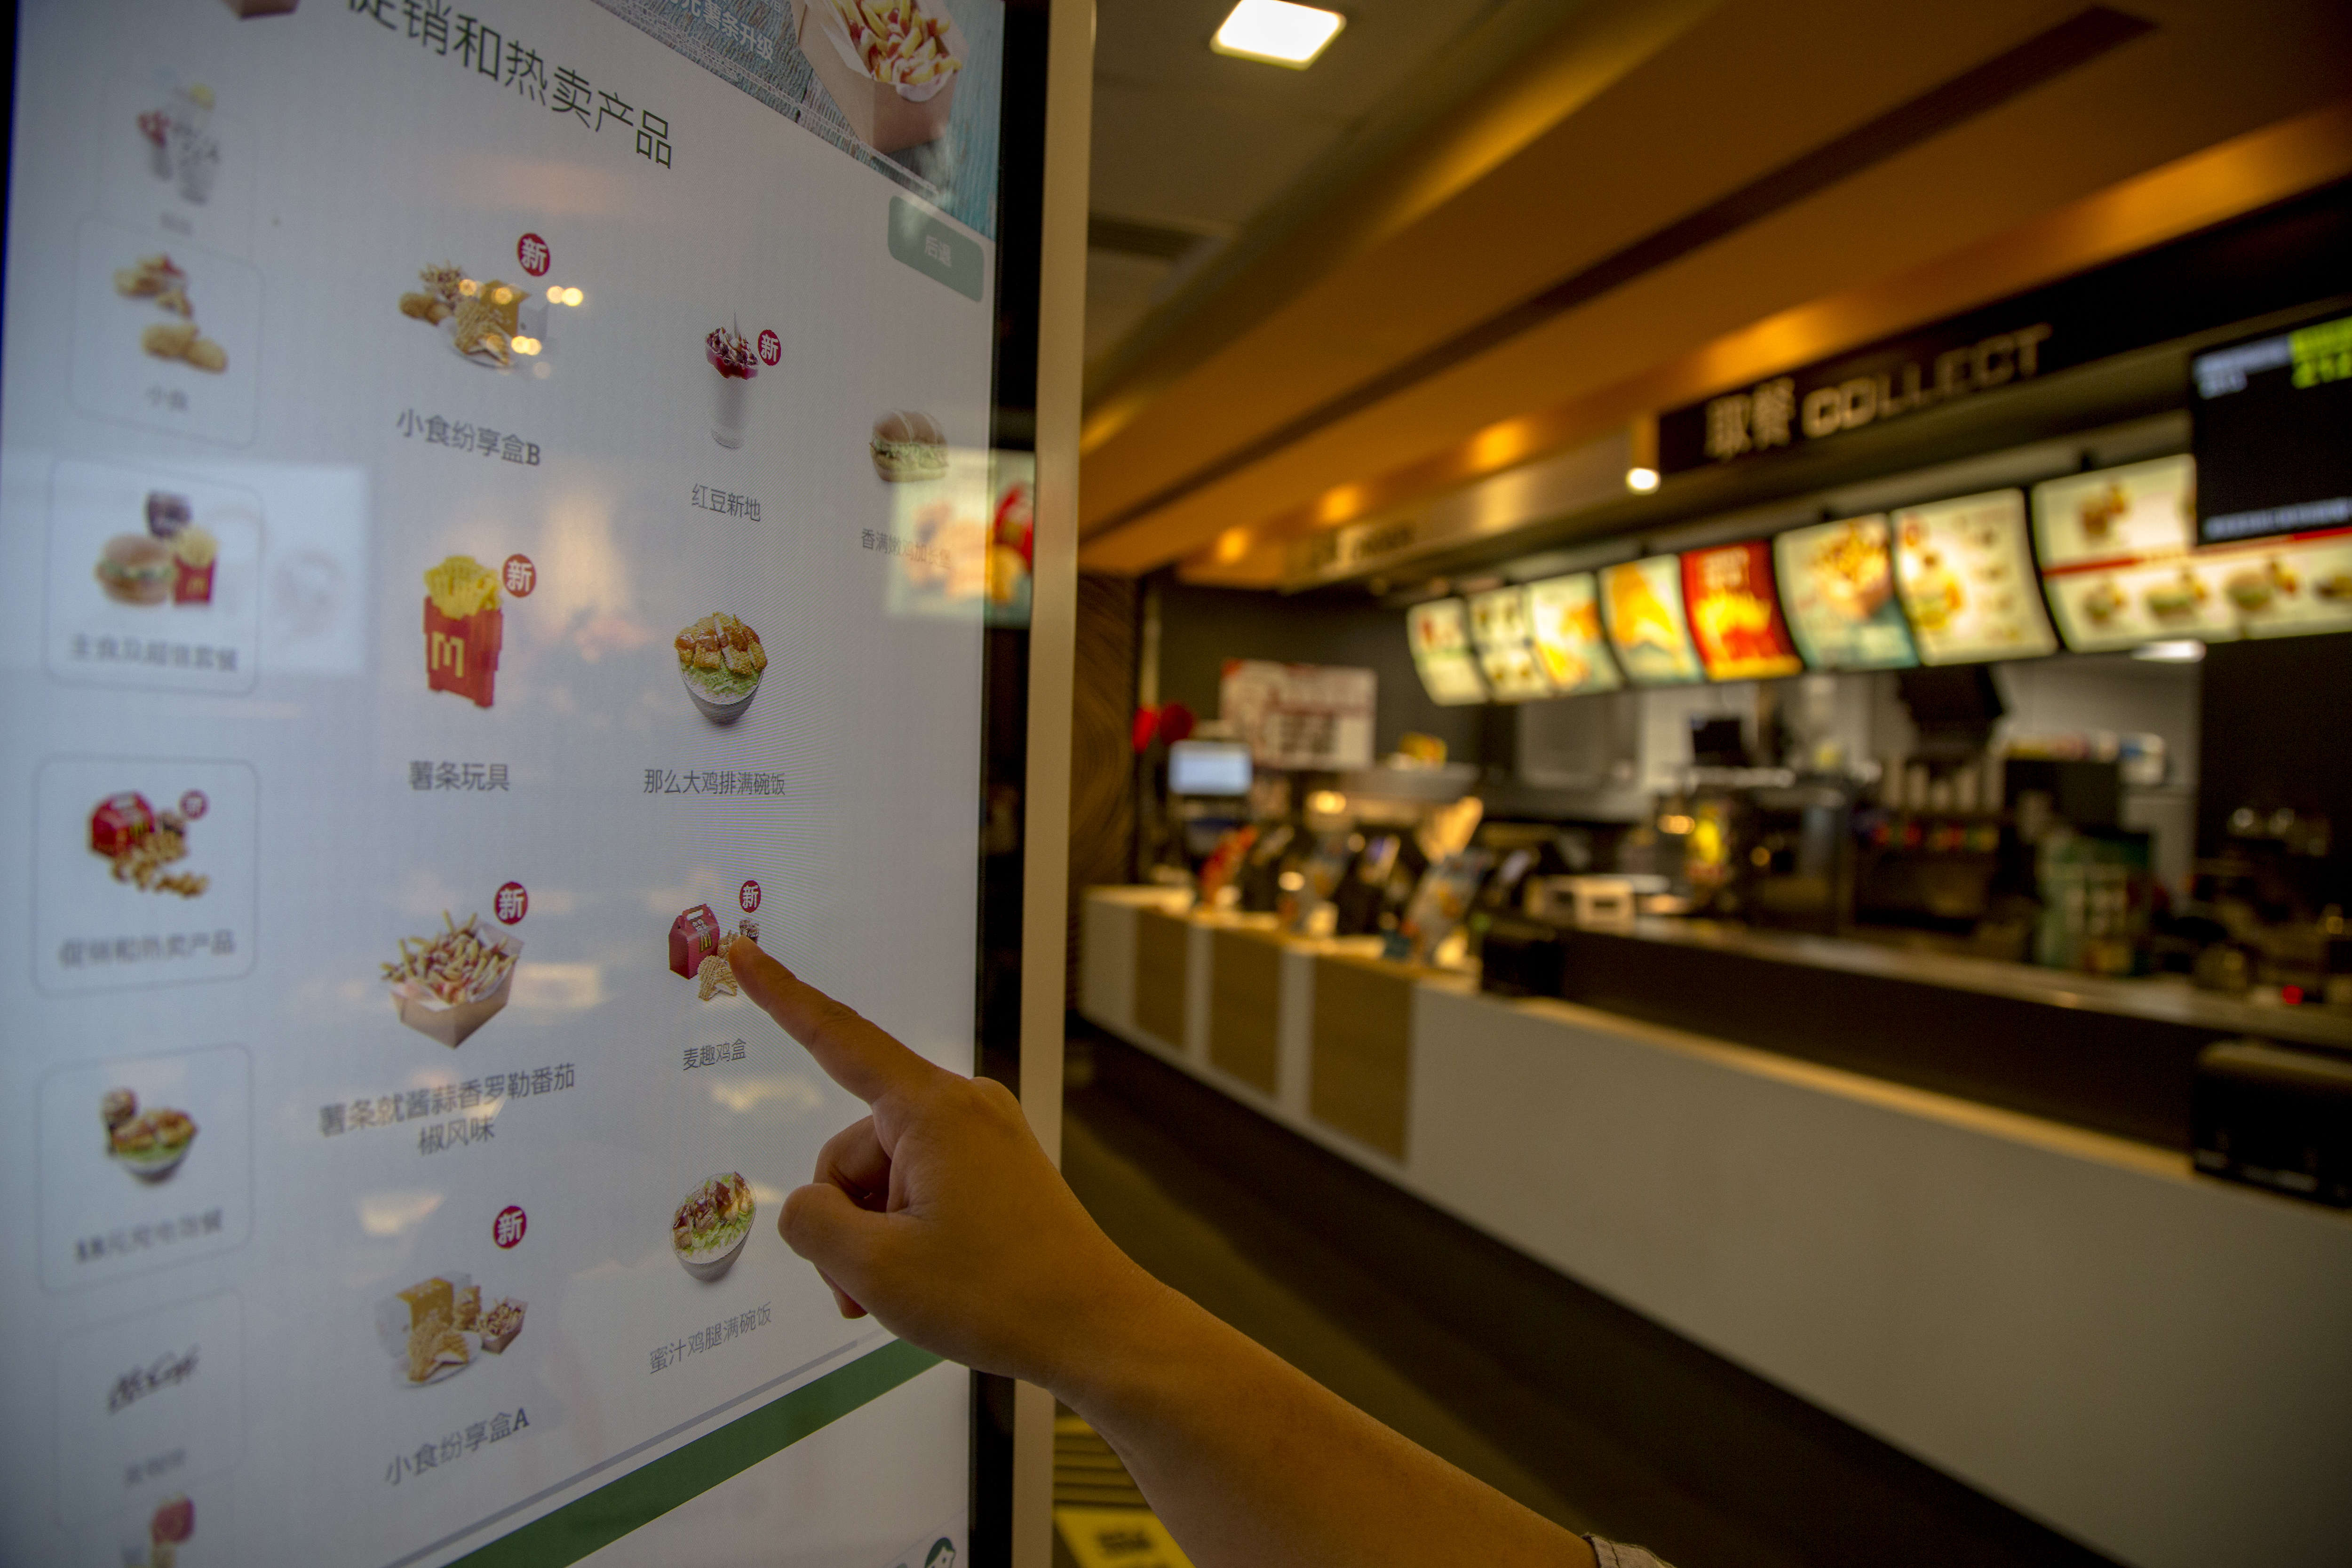 A vending machine in a McDonald's restaurant.  Customers can